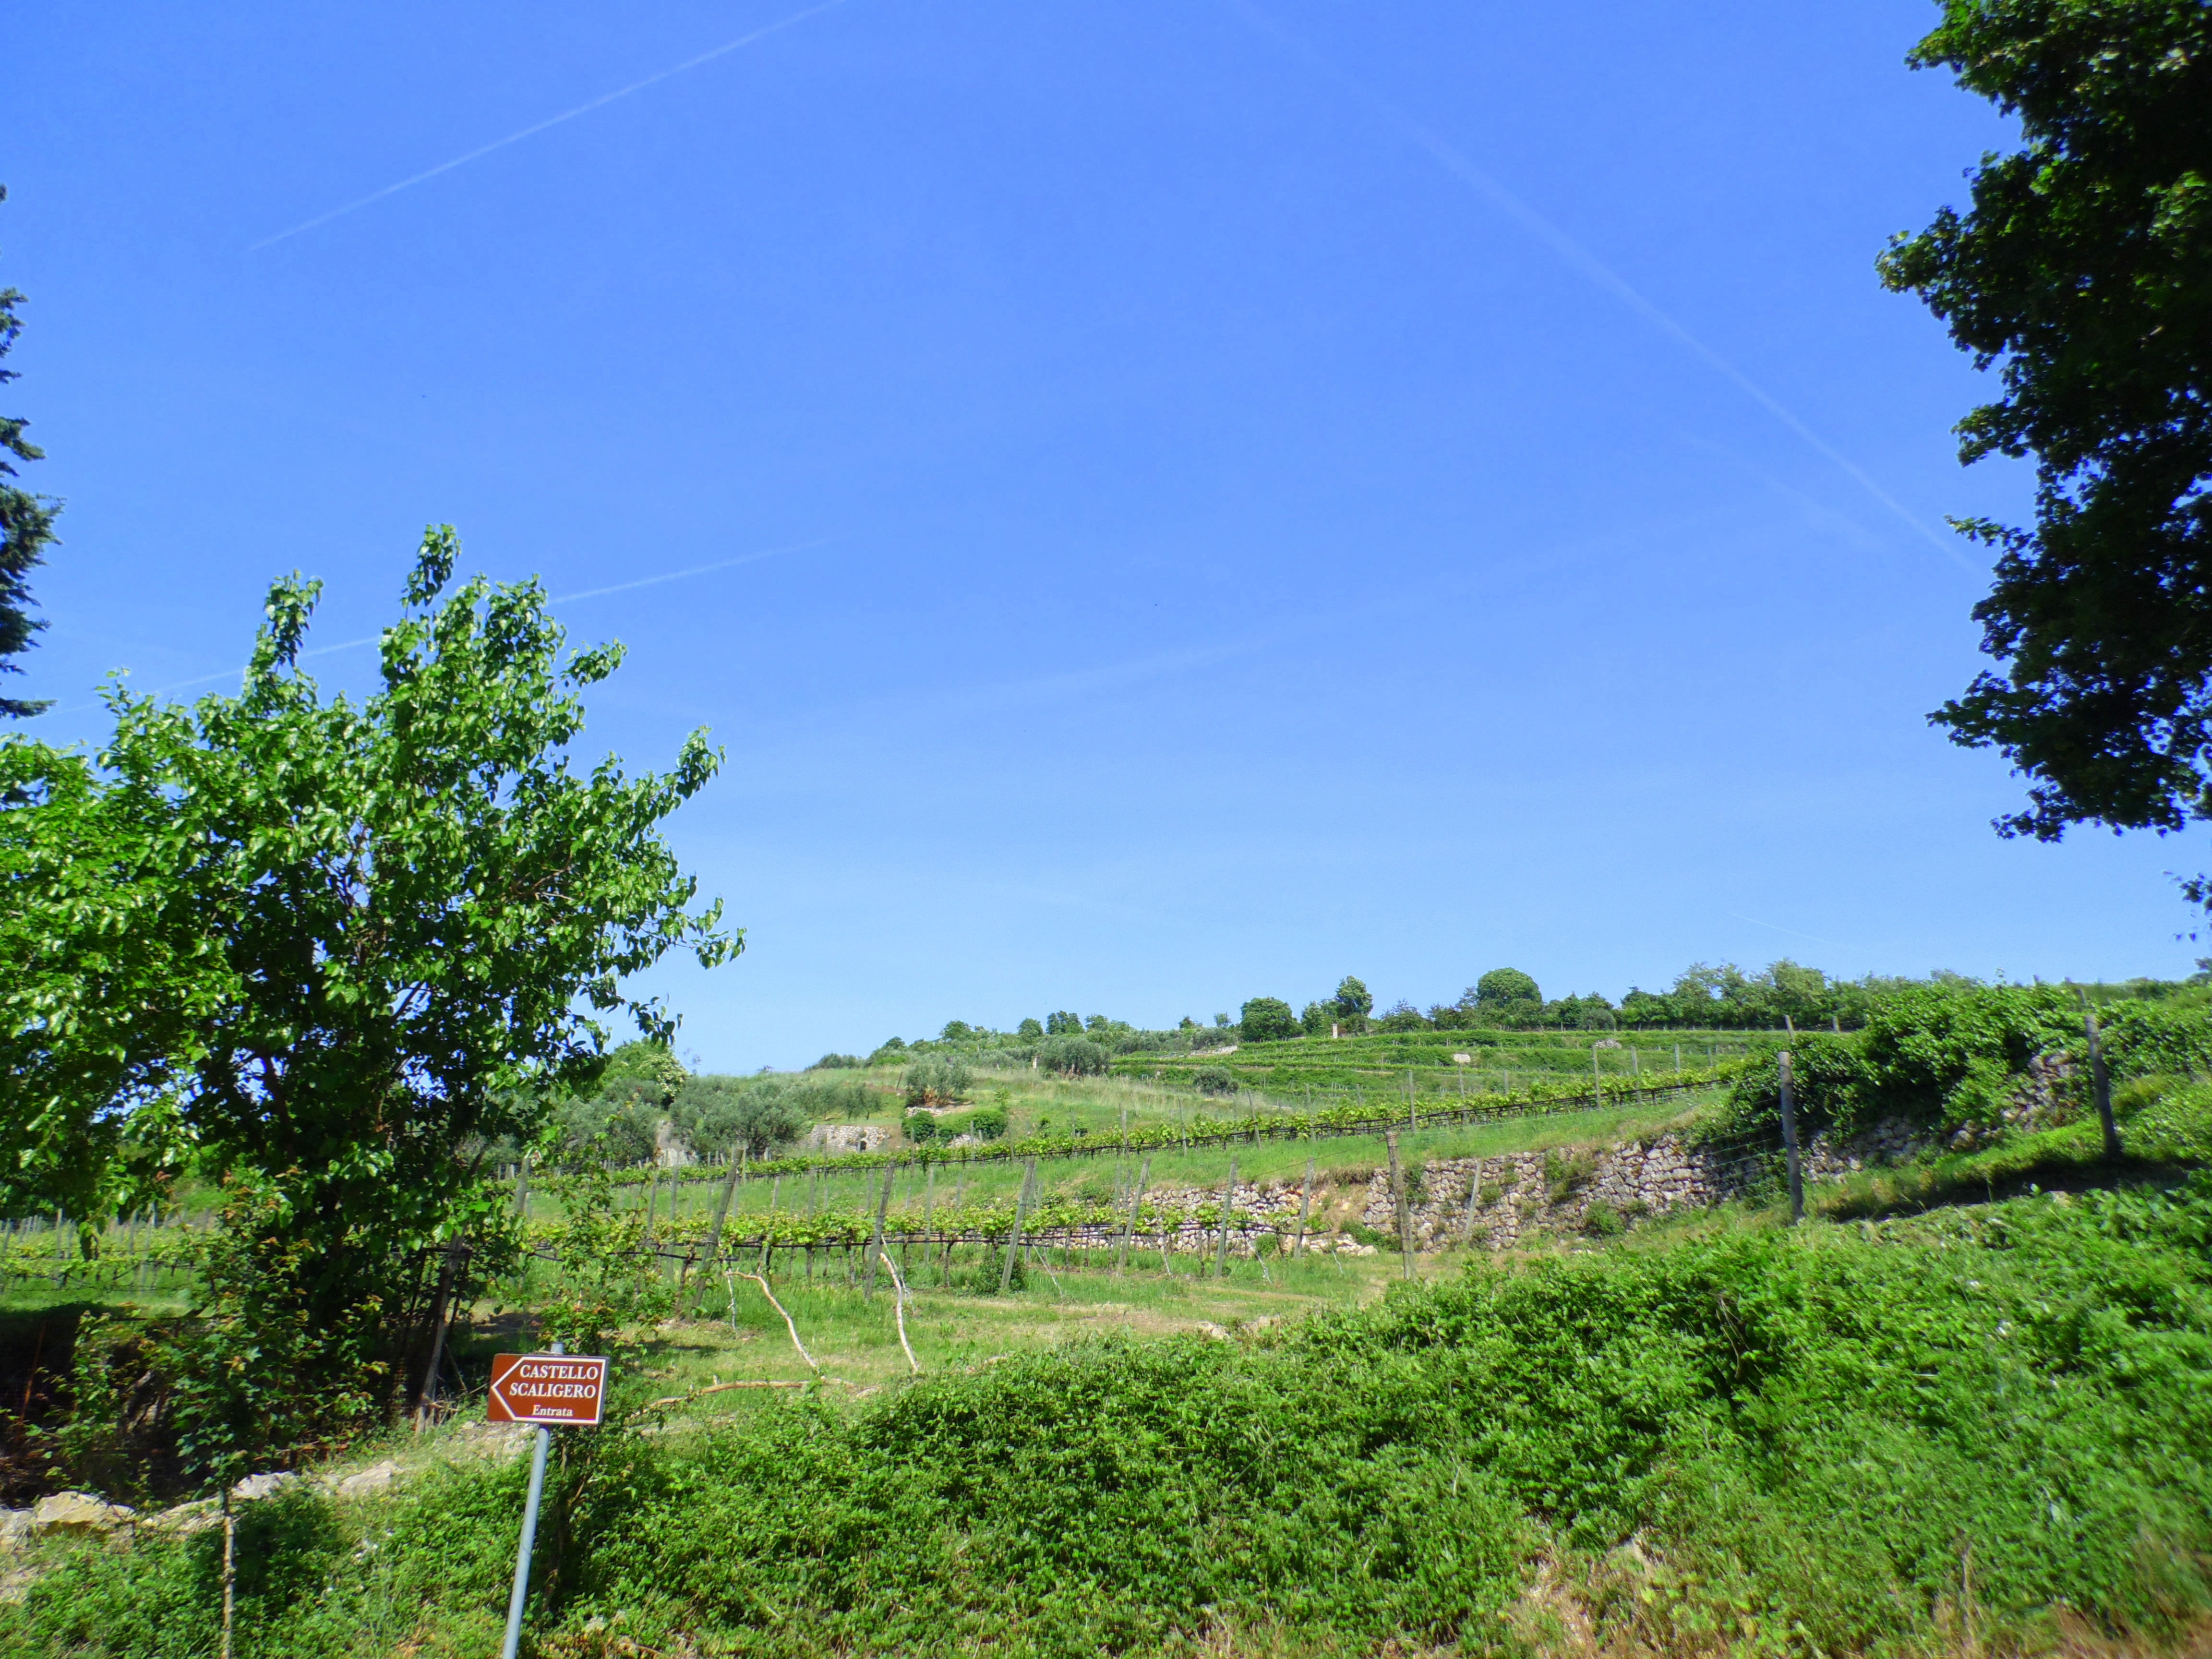 The Soave wine region